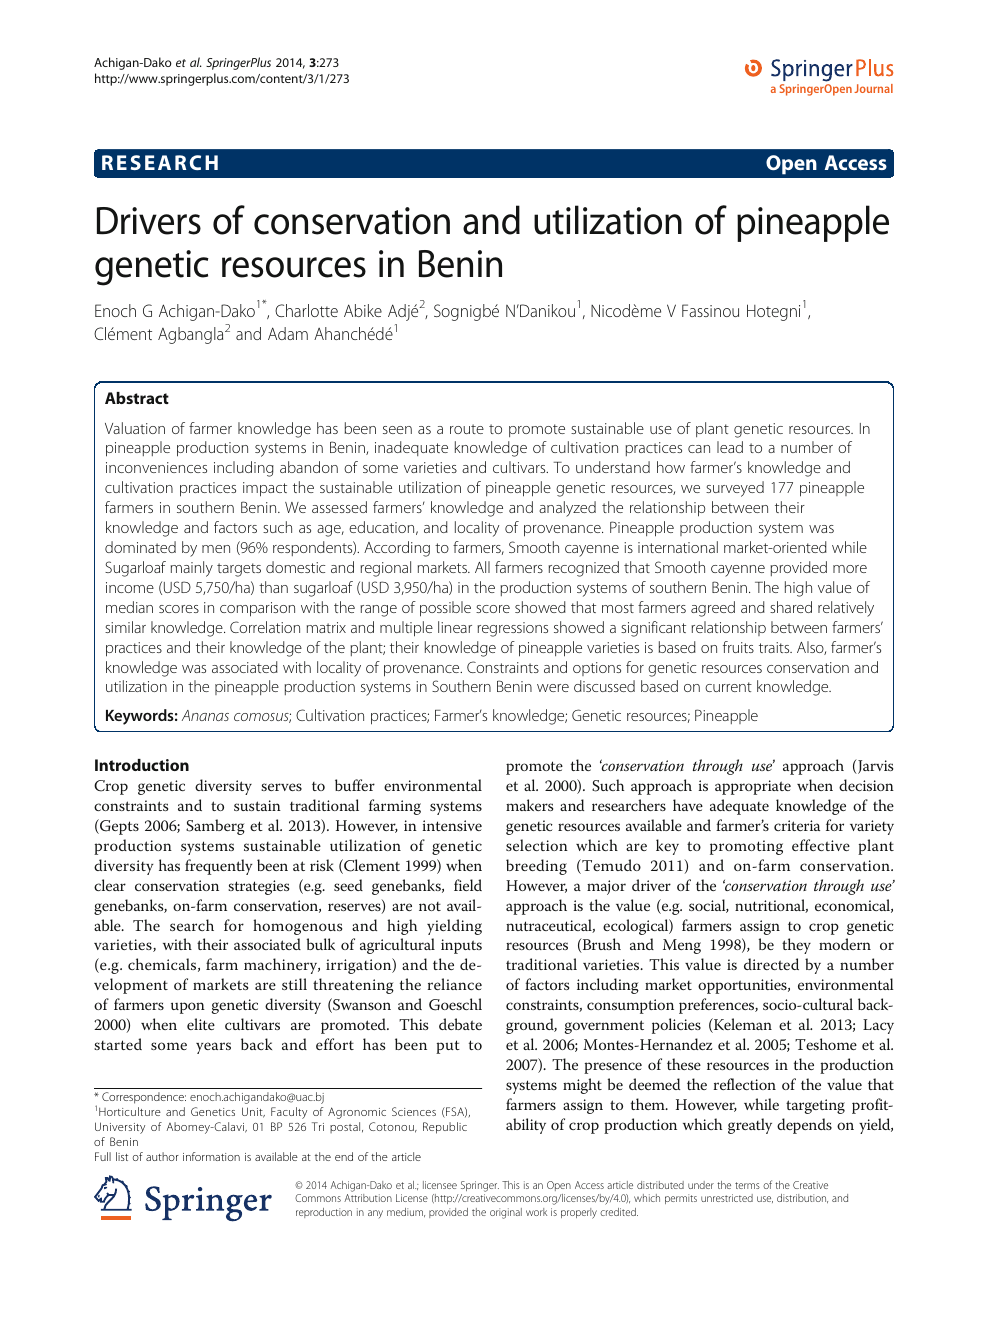 Drivers of conservation and utilization of pineapple genetic